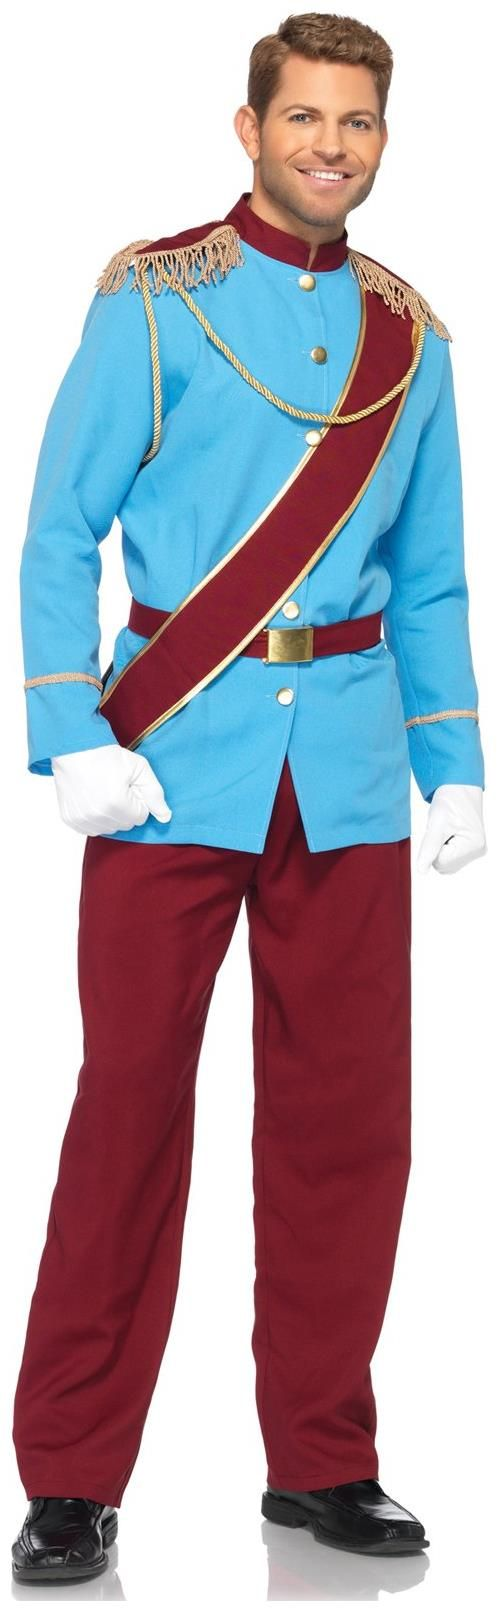 Best 25 disney prince costume ideas on pinterest prince adult blue and red prince charming costume solutioingenieria Images